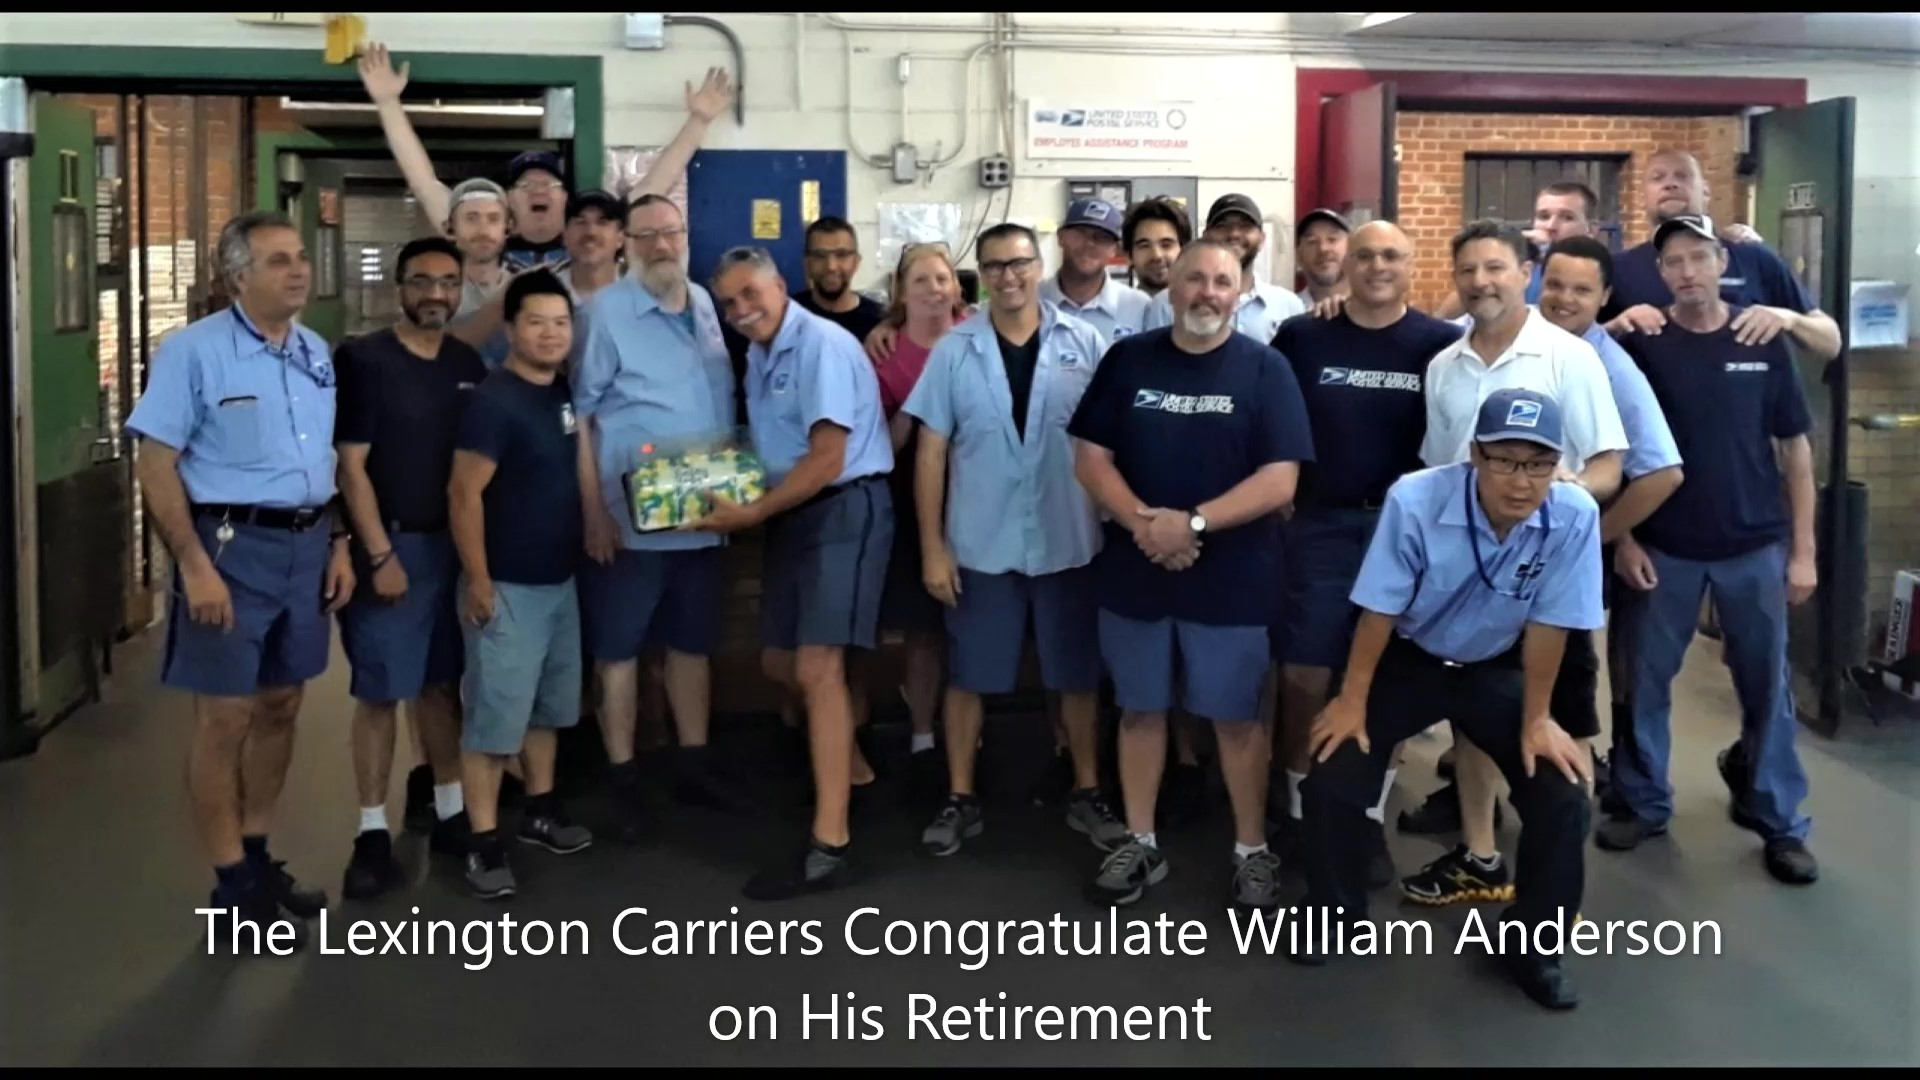 William-Anderson-Lexington-Retires-62019-2_Large_Moment